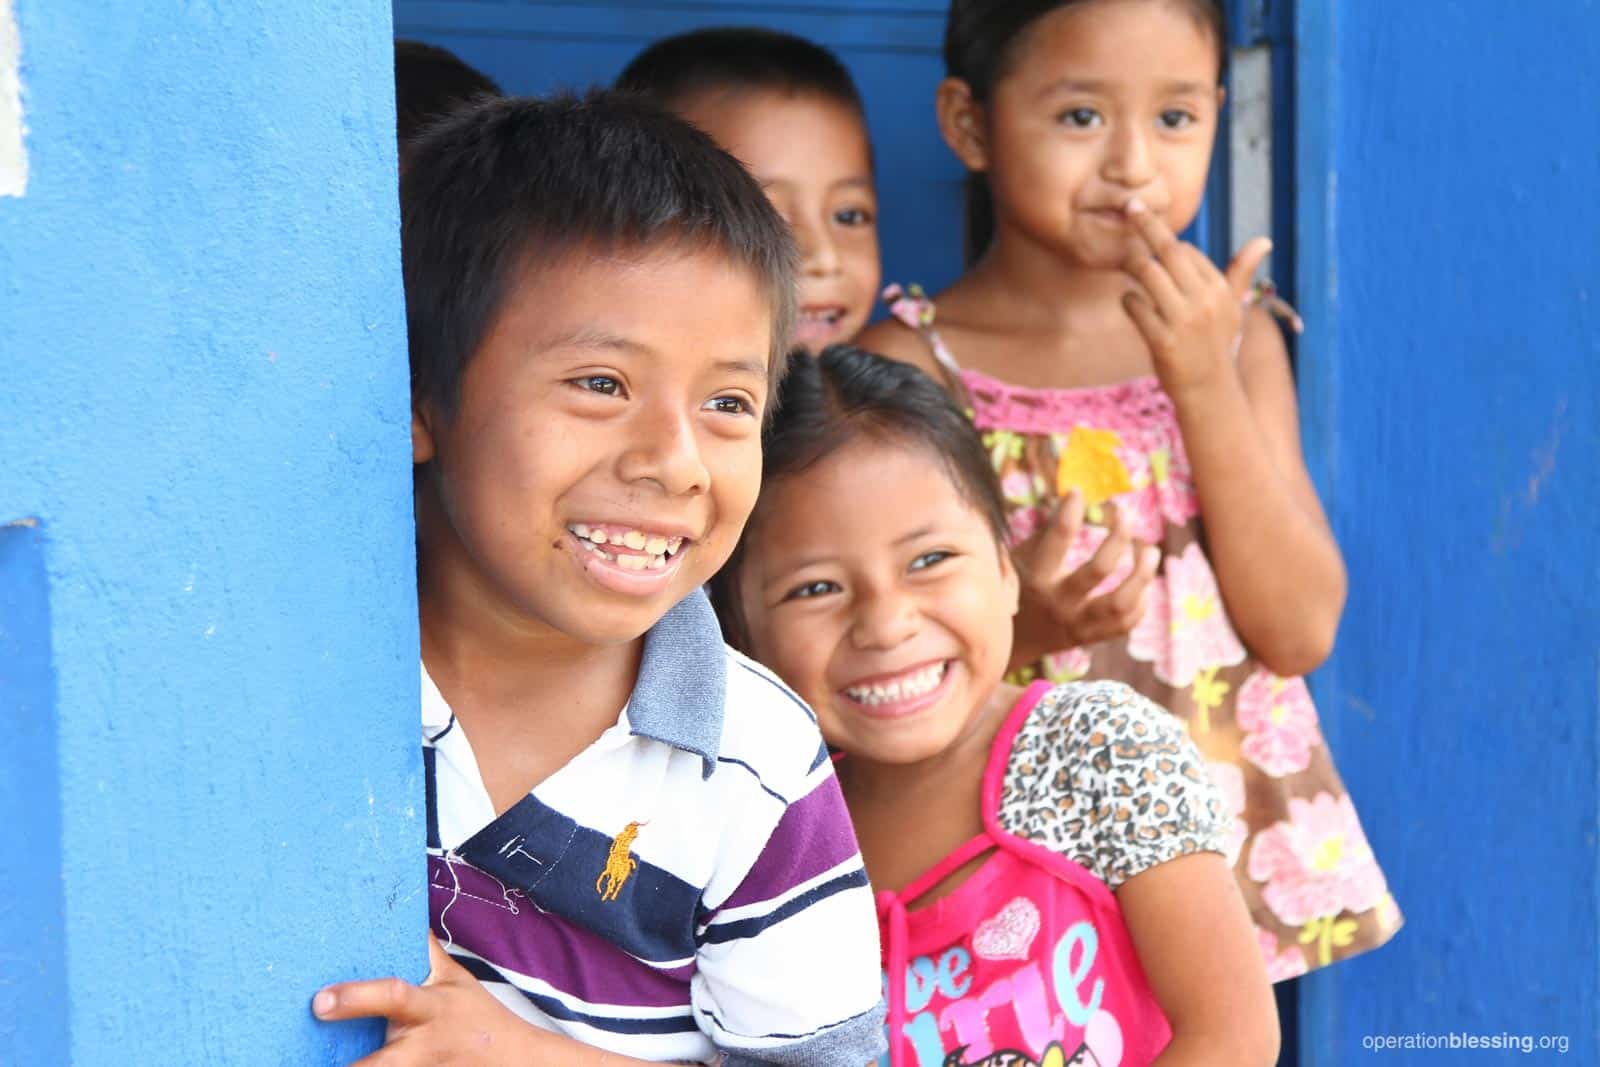 Vilma (middle) and her classmates are thankful for the new facilities at her school with no scorpions!